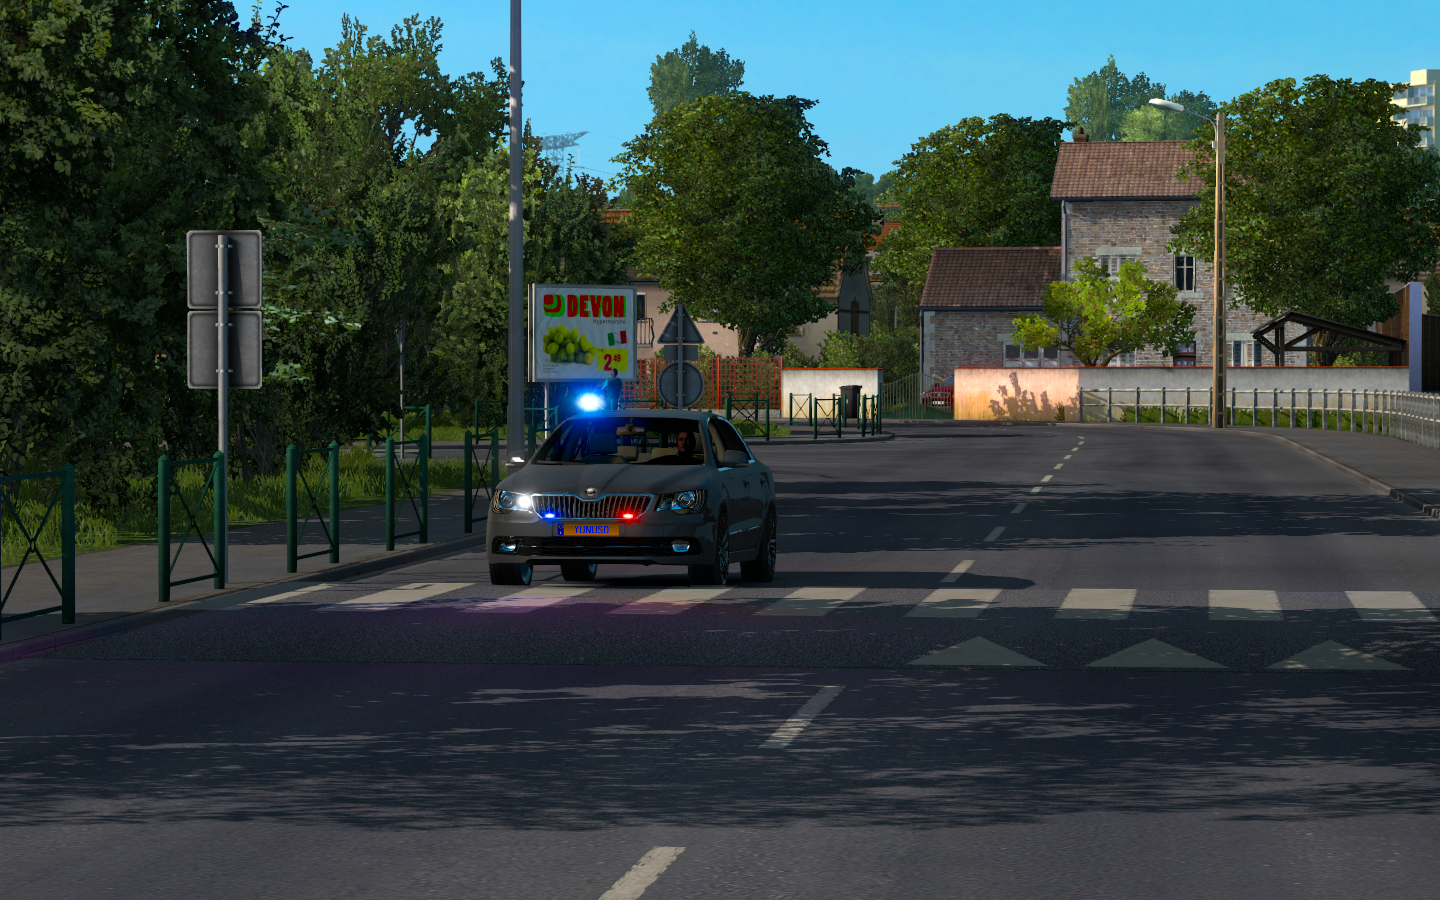 ets2_20190502_192805_00.png